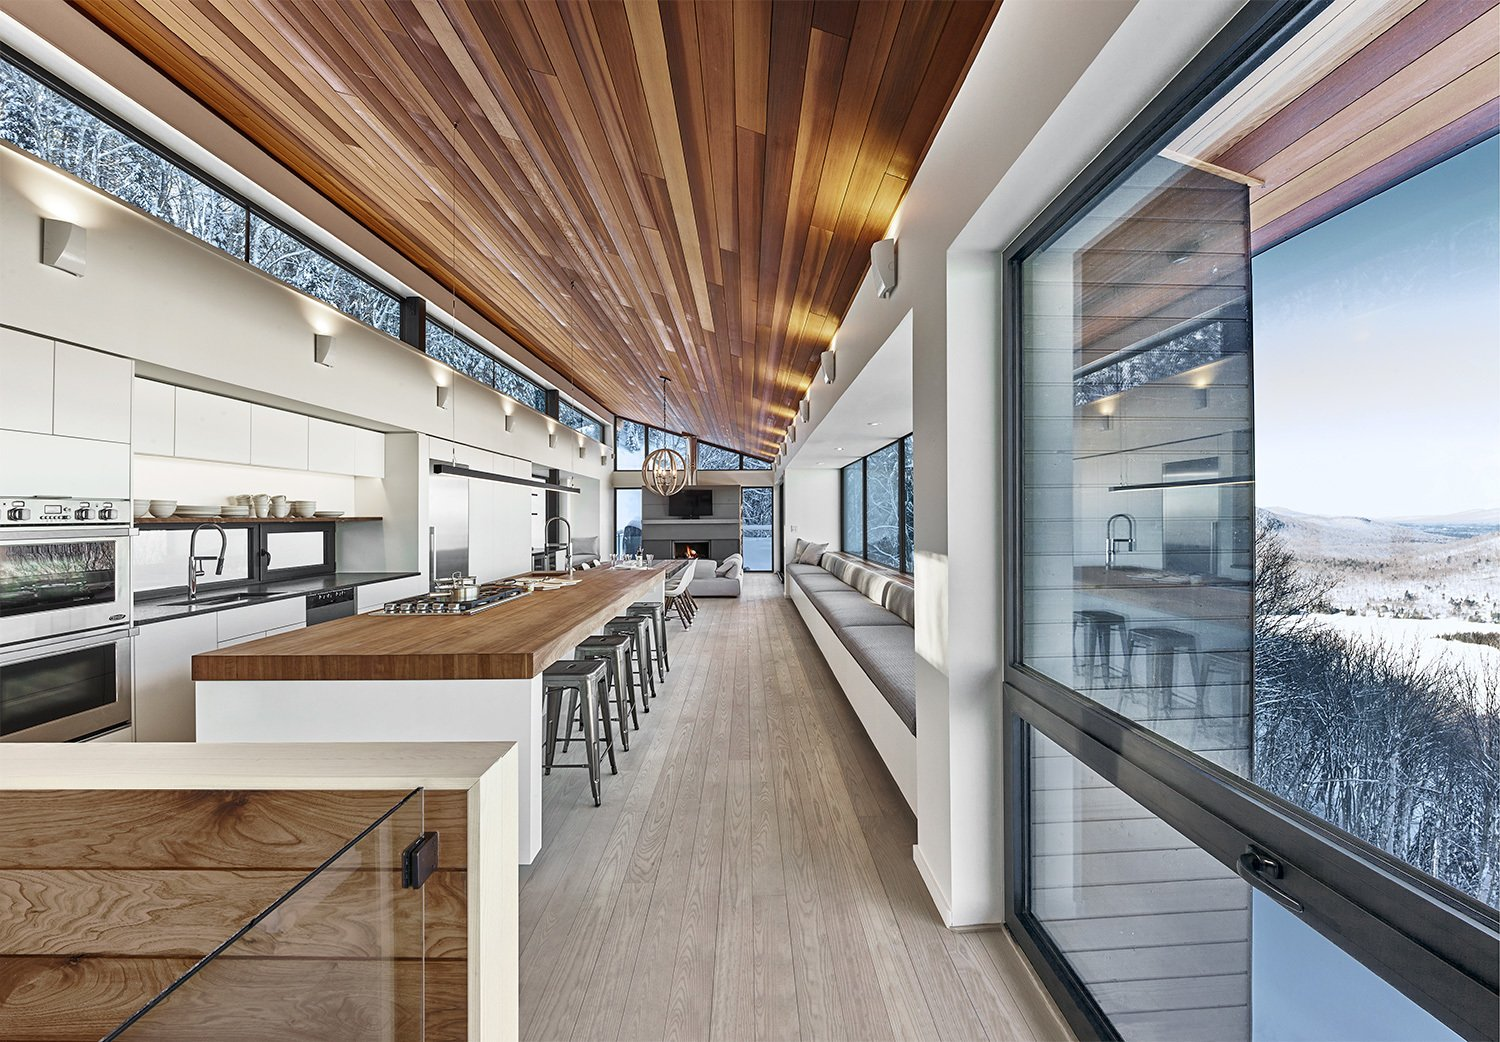 Kitchen, Medium Hardwood Floor, Wall Oven, Refrigerator, White Cabinet, Wood Counter, Ceiling Lighting, Undermount Sink, Light Hardwood Floor, Wall Lighting, Granite Counter, and Cooktops Overall view of main living space.  Laurentian Ski Chalet by RobitailleCurtis